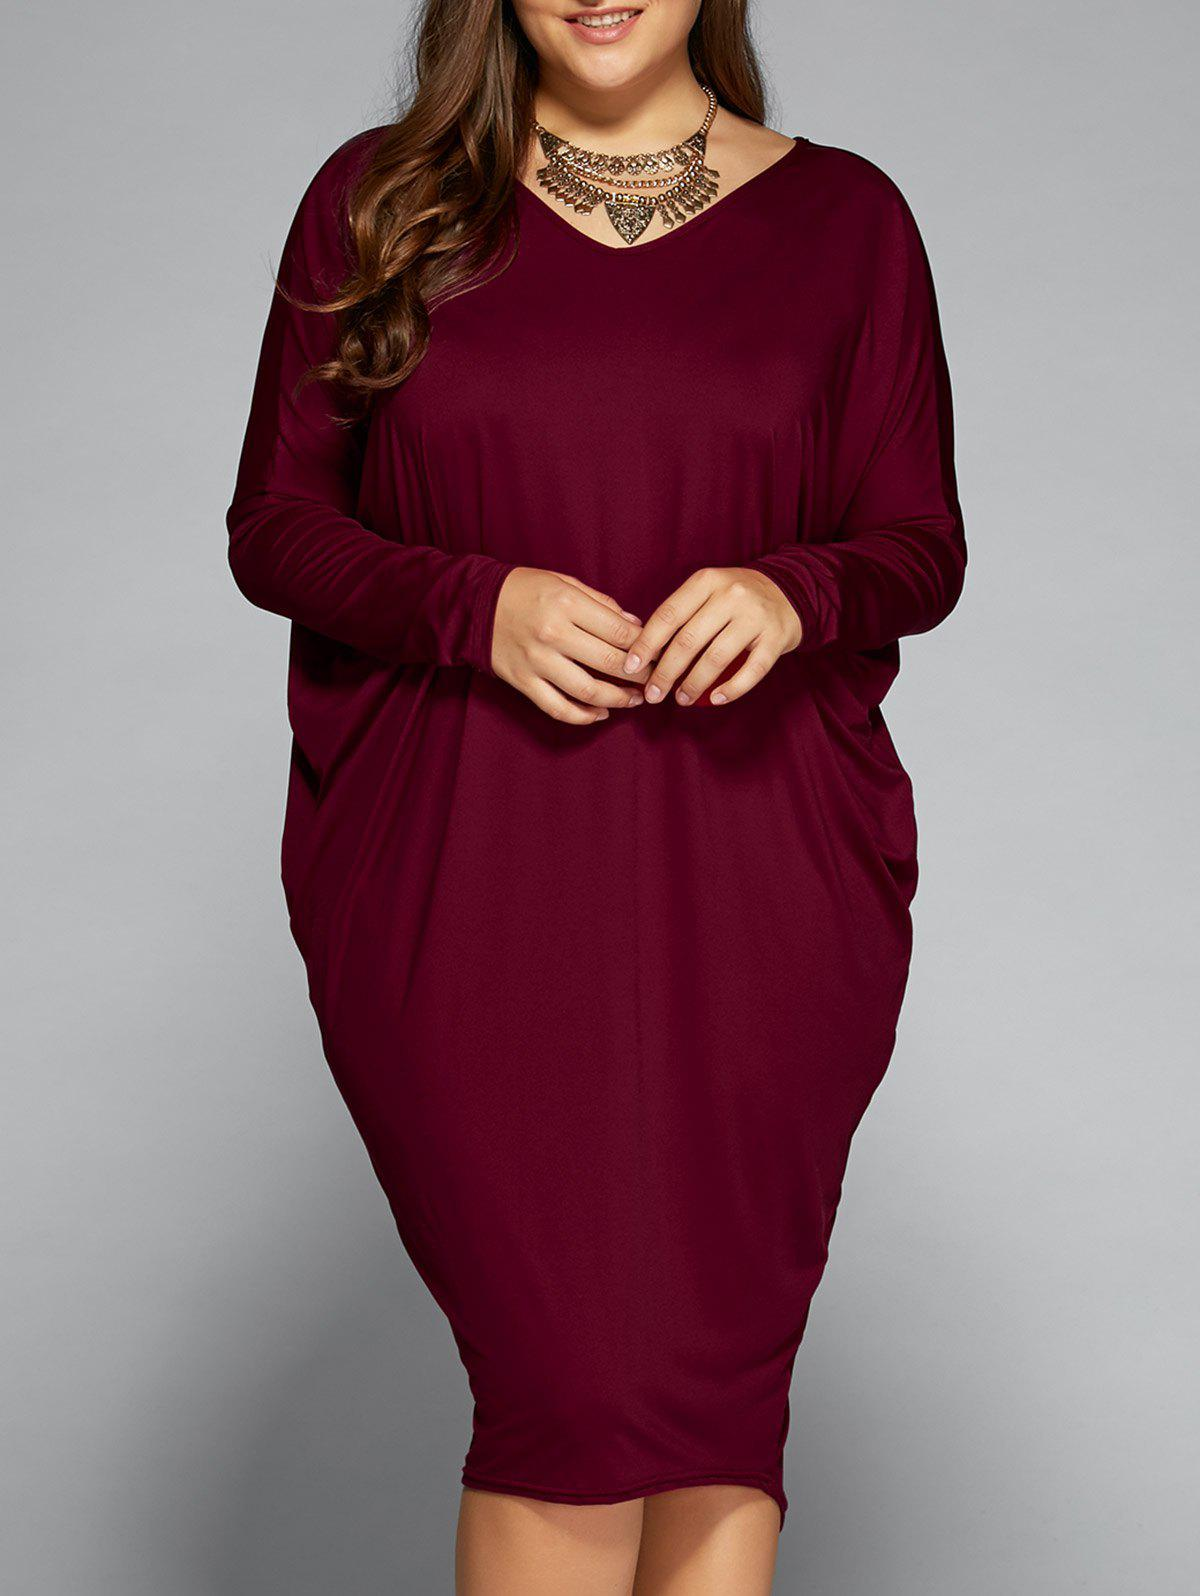 Loose Hollow Out Asymmetric DressWOMEN<br><br>Size: ONE SIZE; Color: WINE RED; Style: Brief; Material: Polyester; Silhouette: Straight; Dresses Length: Knee-Length; Neckline: V-Neck; Sleeve Length: Long Sleeves; Embellishment: Hollow Out; Pattern Type: Solid; With Belt: No; Season: Fall,Spring; Weight: 0.320kg; Package Contents: 1 x Dress;